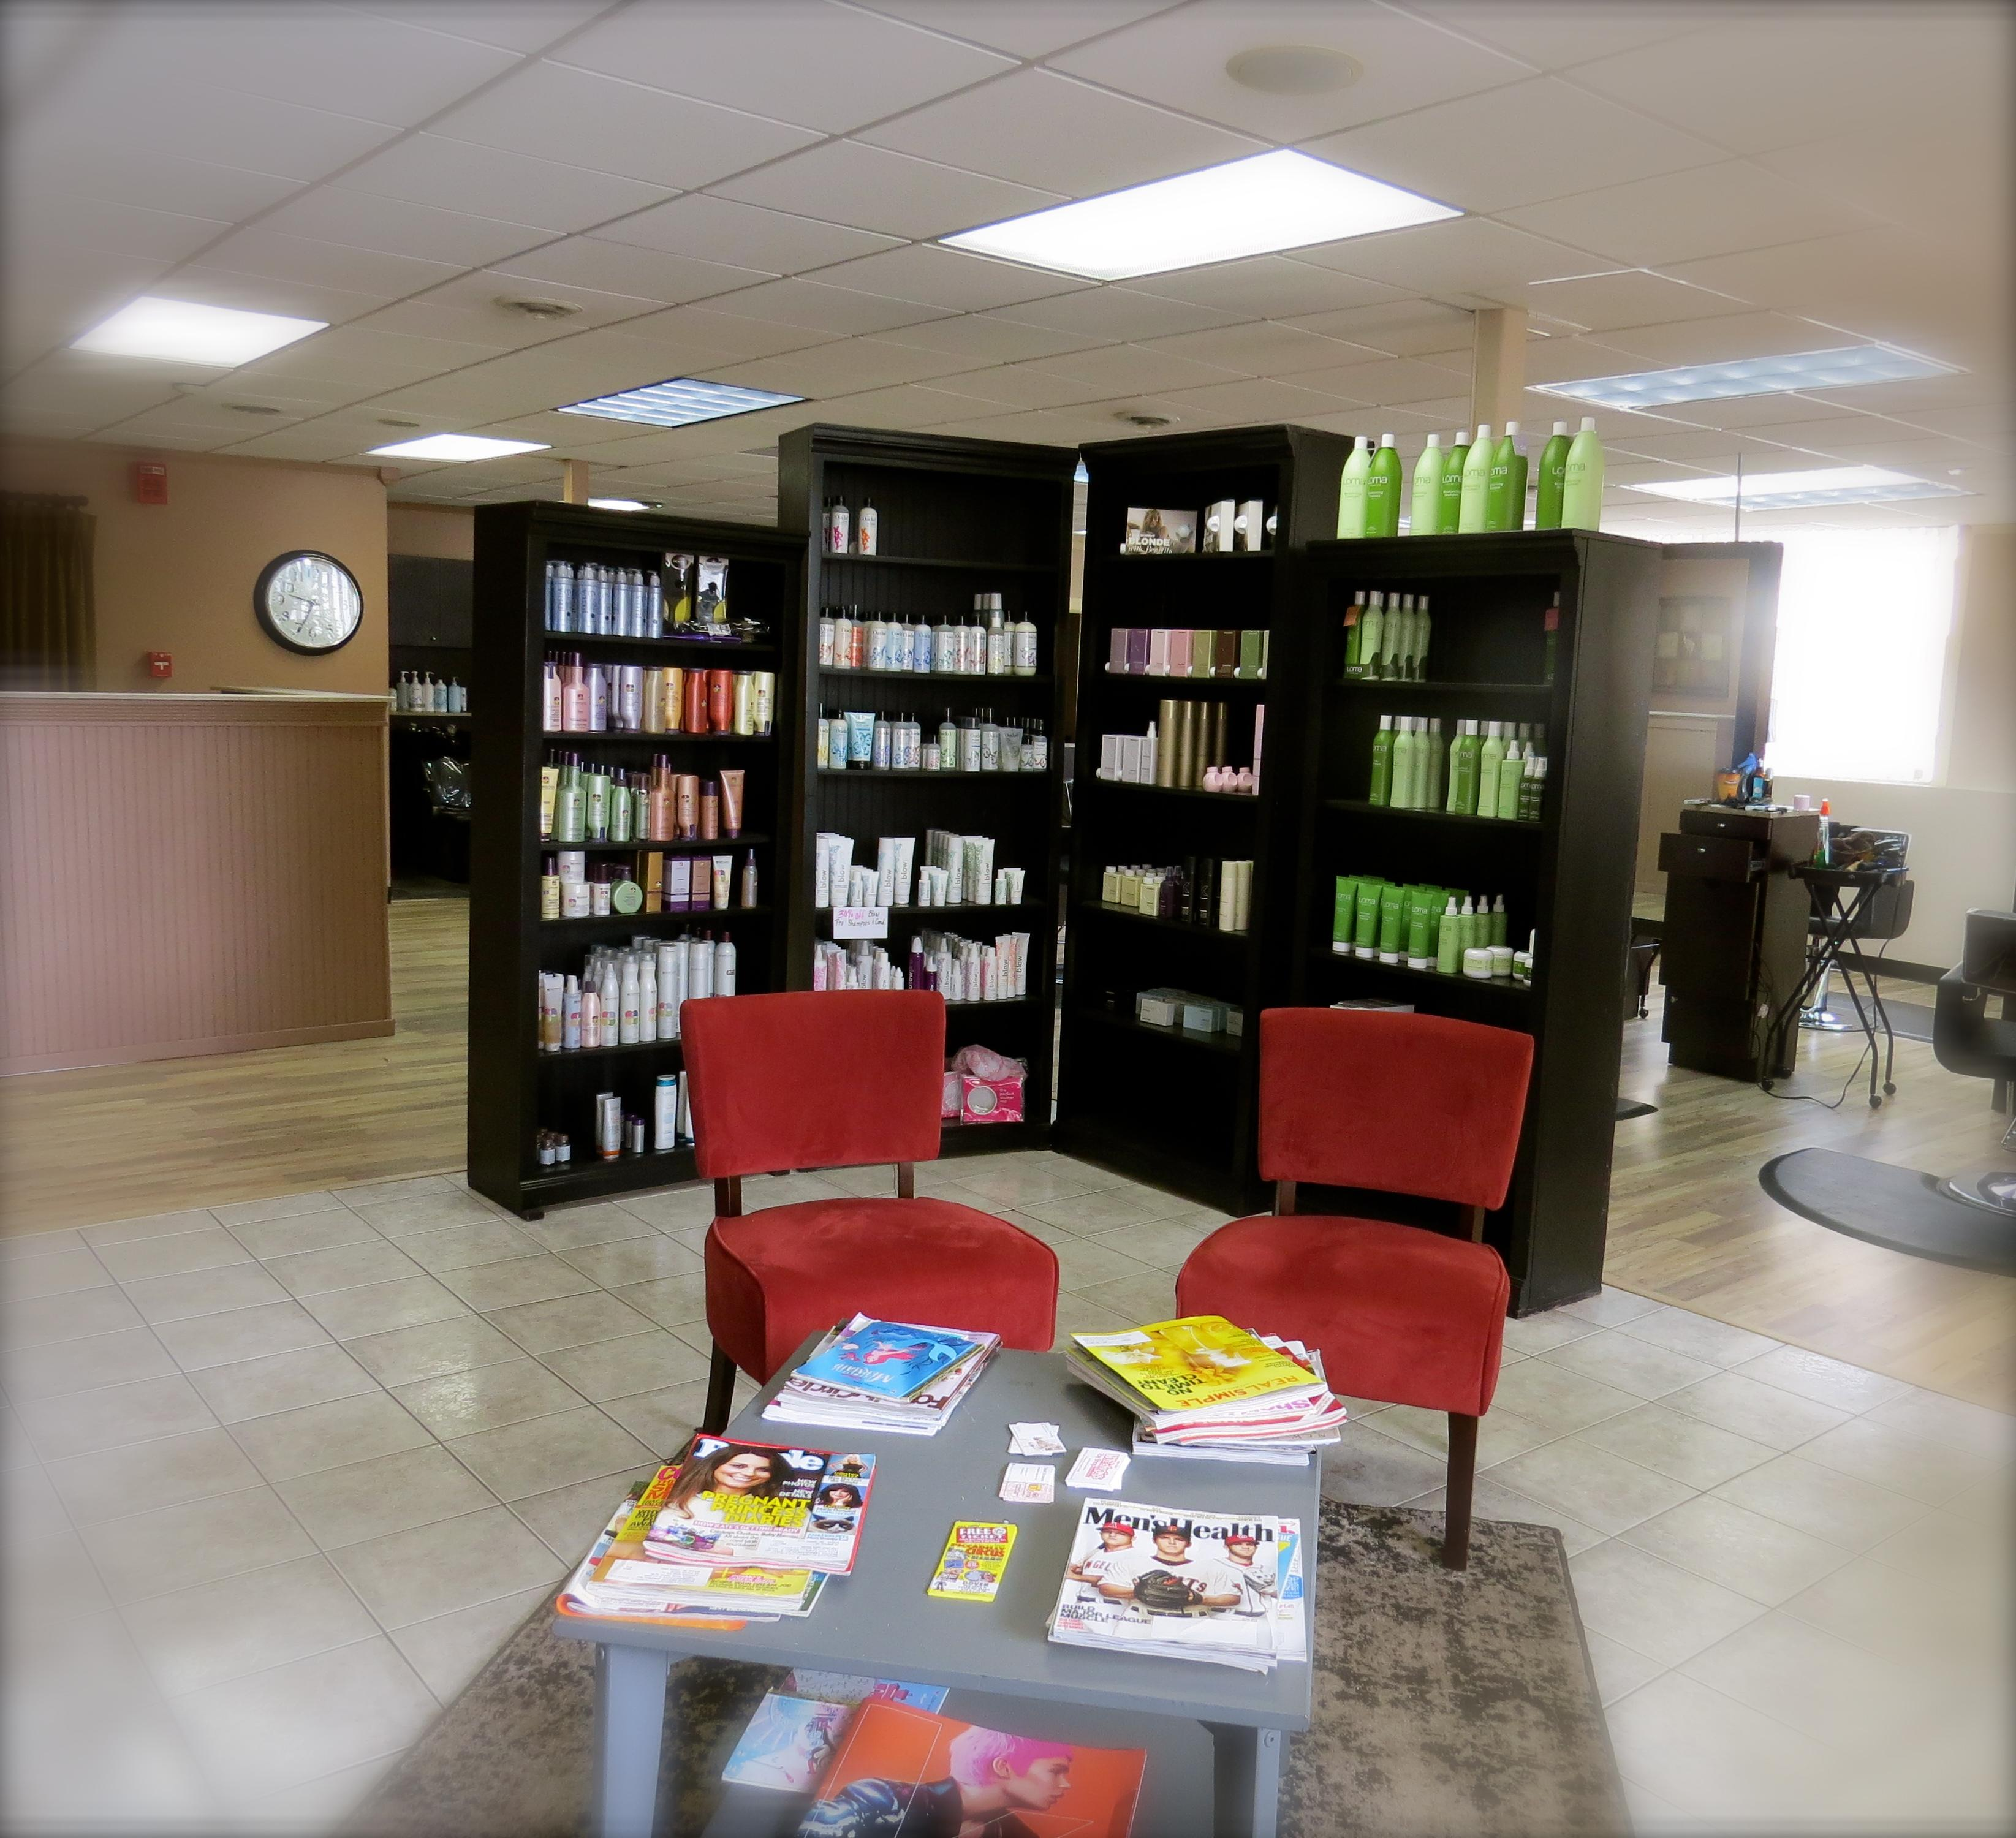 Kintempo hair salon in exeter nh whitepages for Hair salon perfect first essential